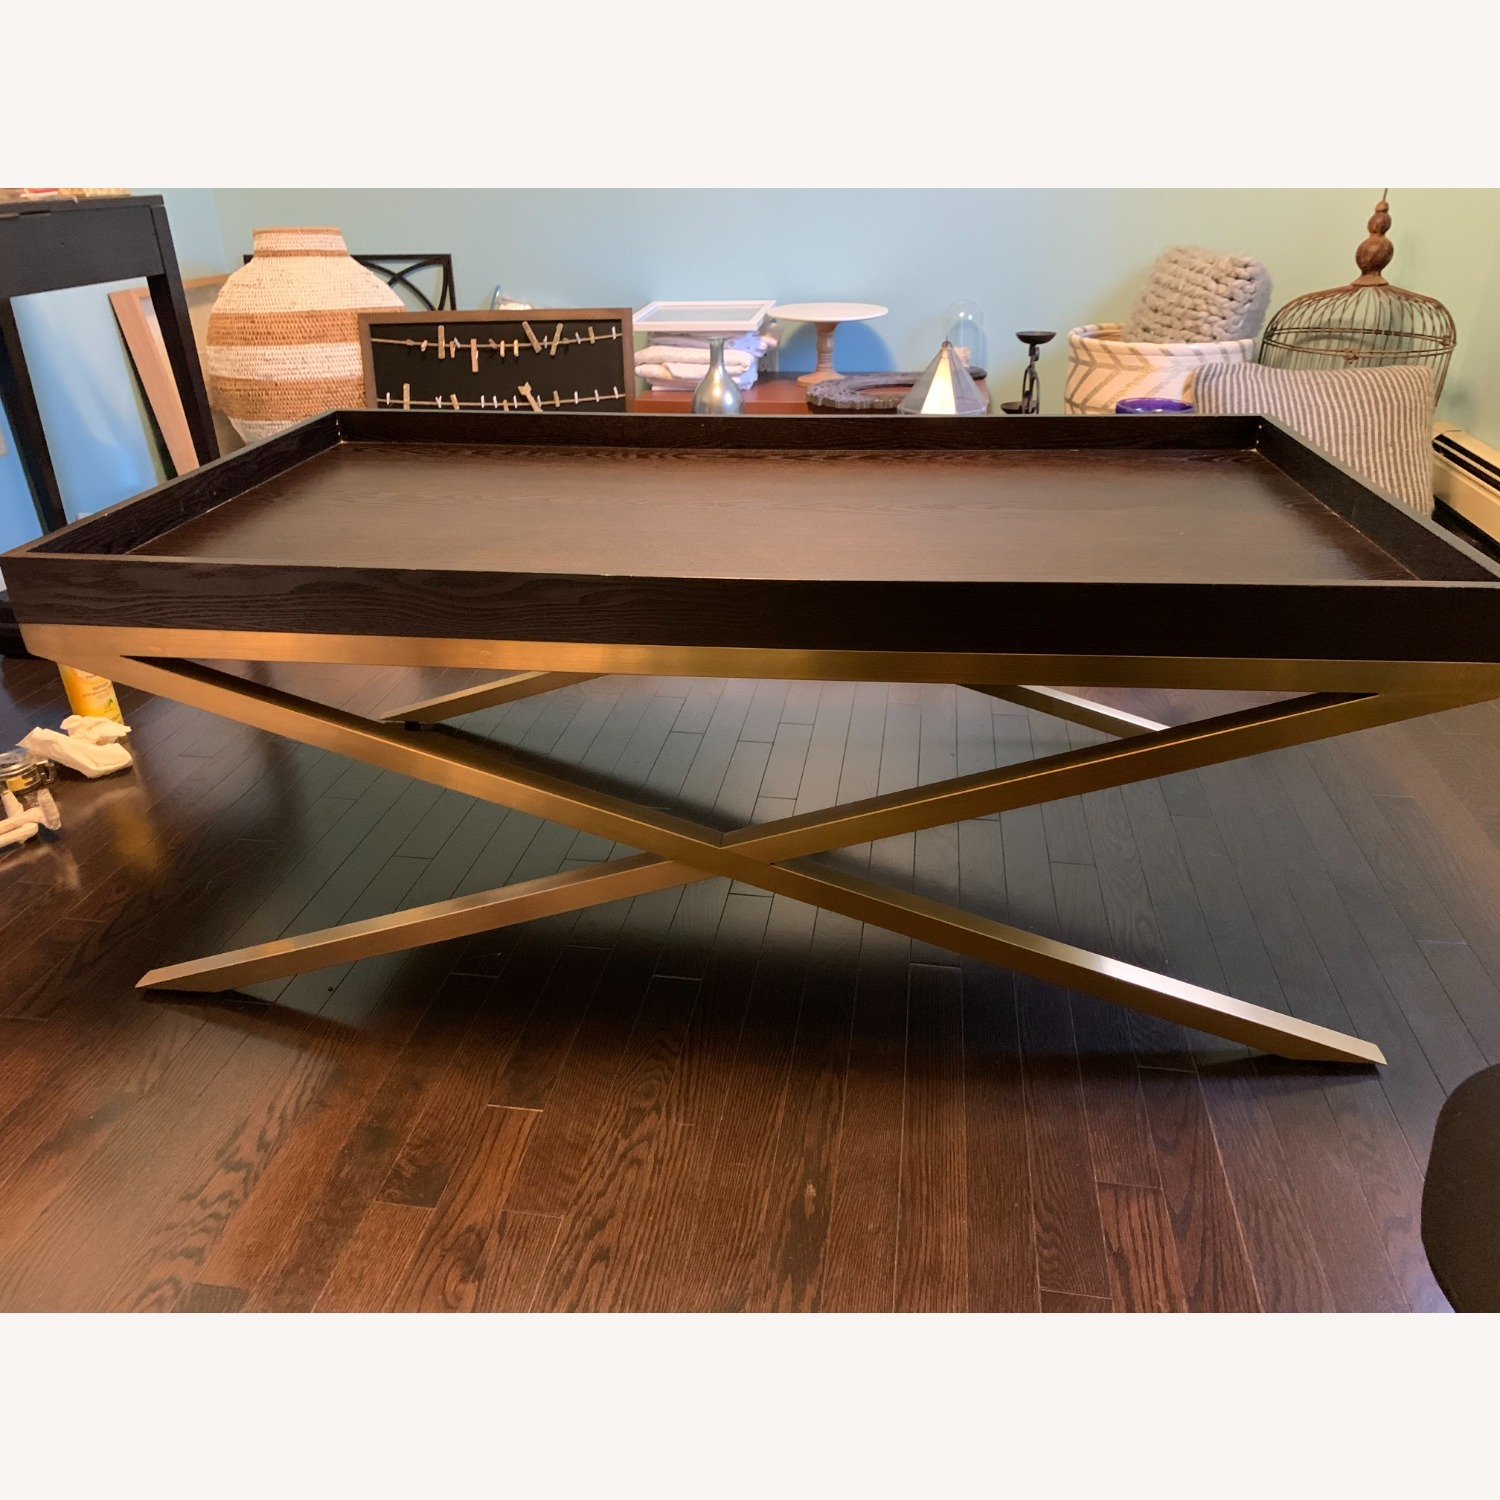 Vanguard Wood & Brass Coffee/Cocktail Table - image-1